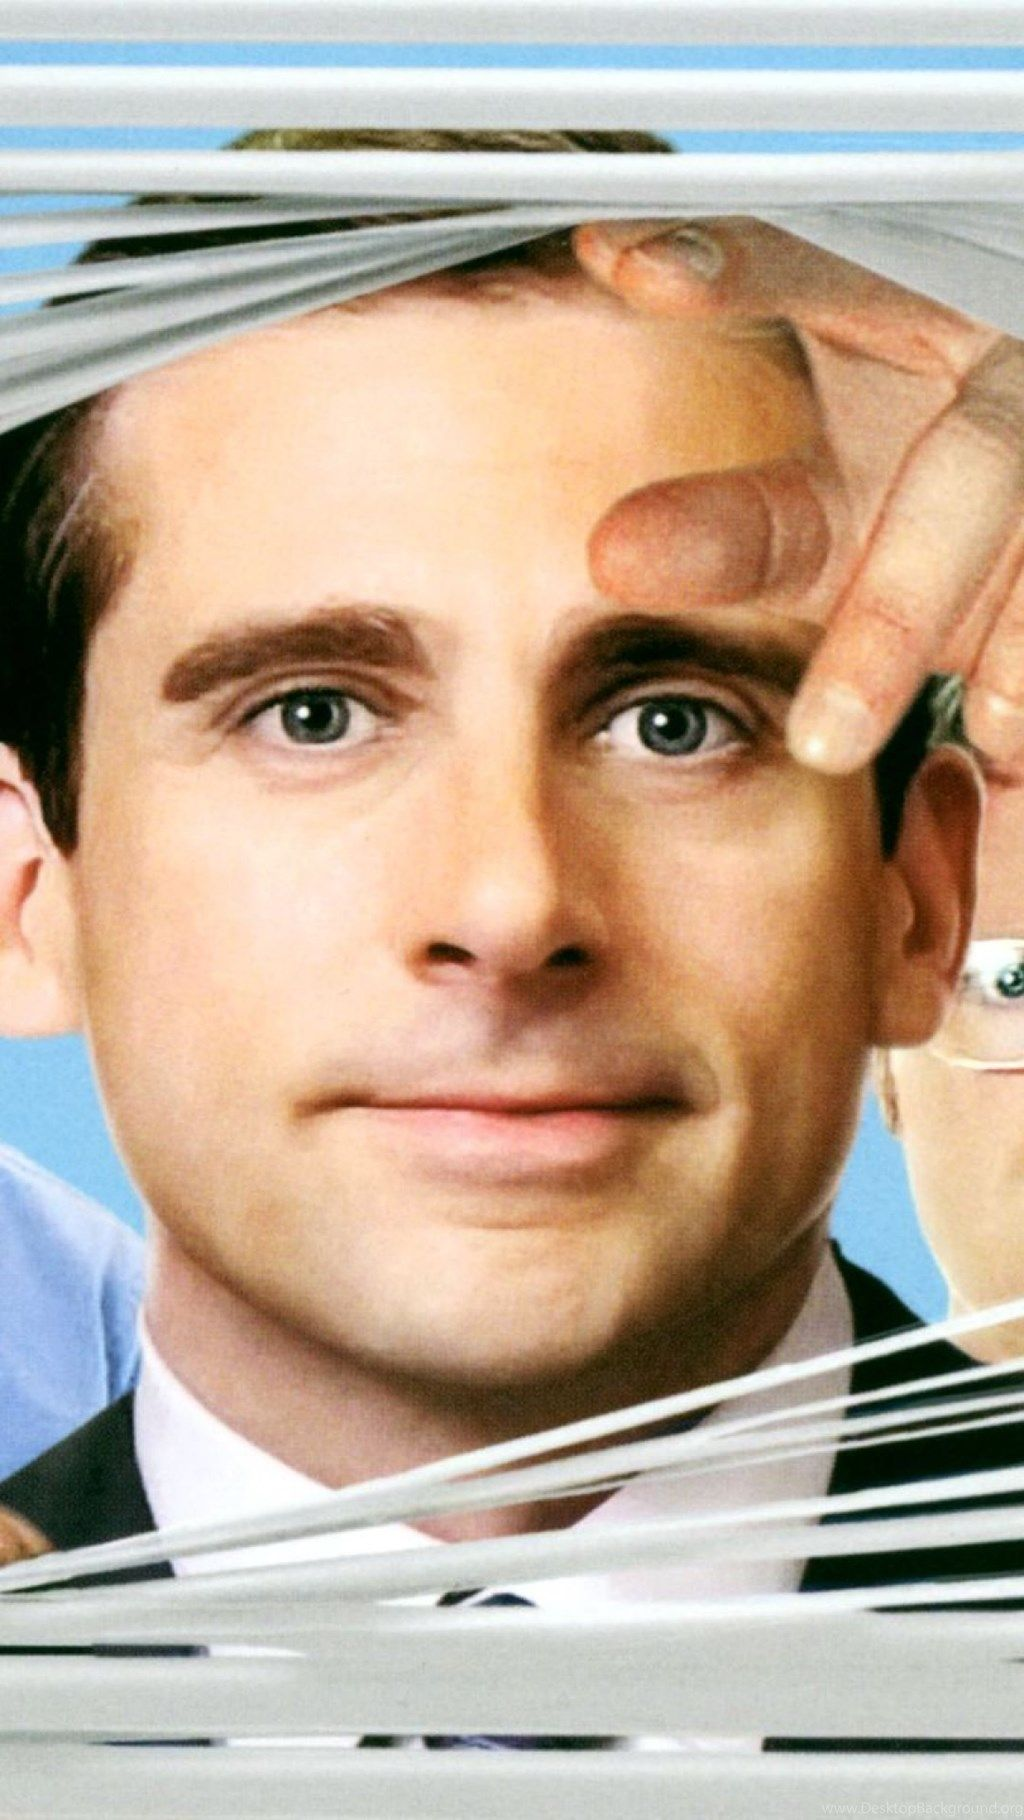 Download Wallpapers 1080x1920 The Office, Steve Carell, John